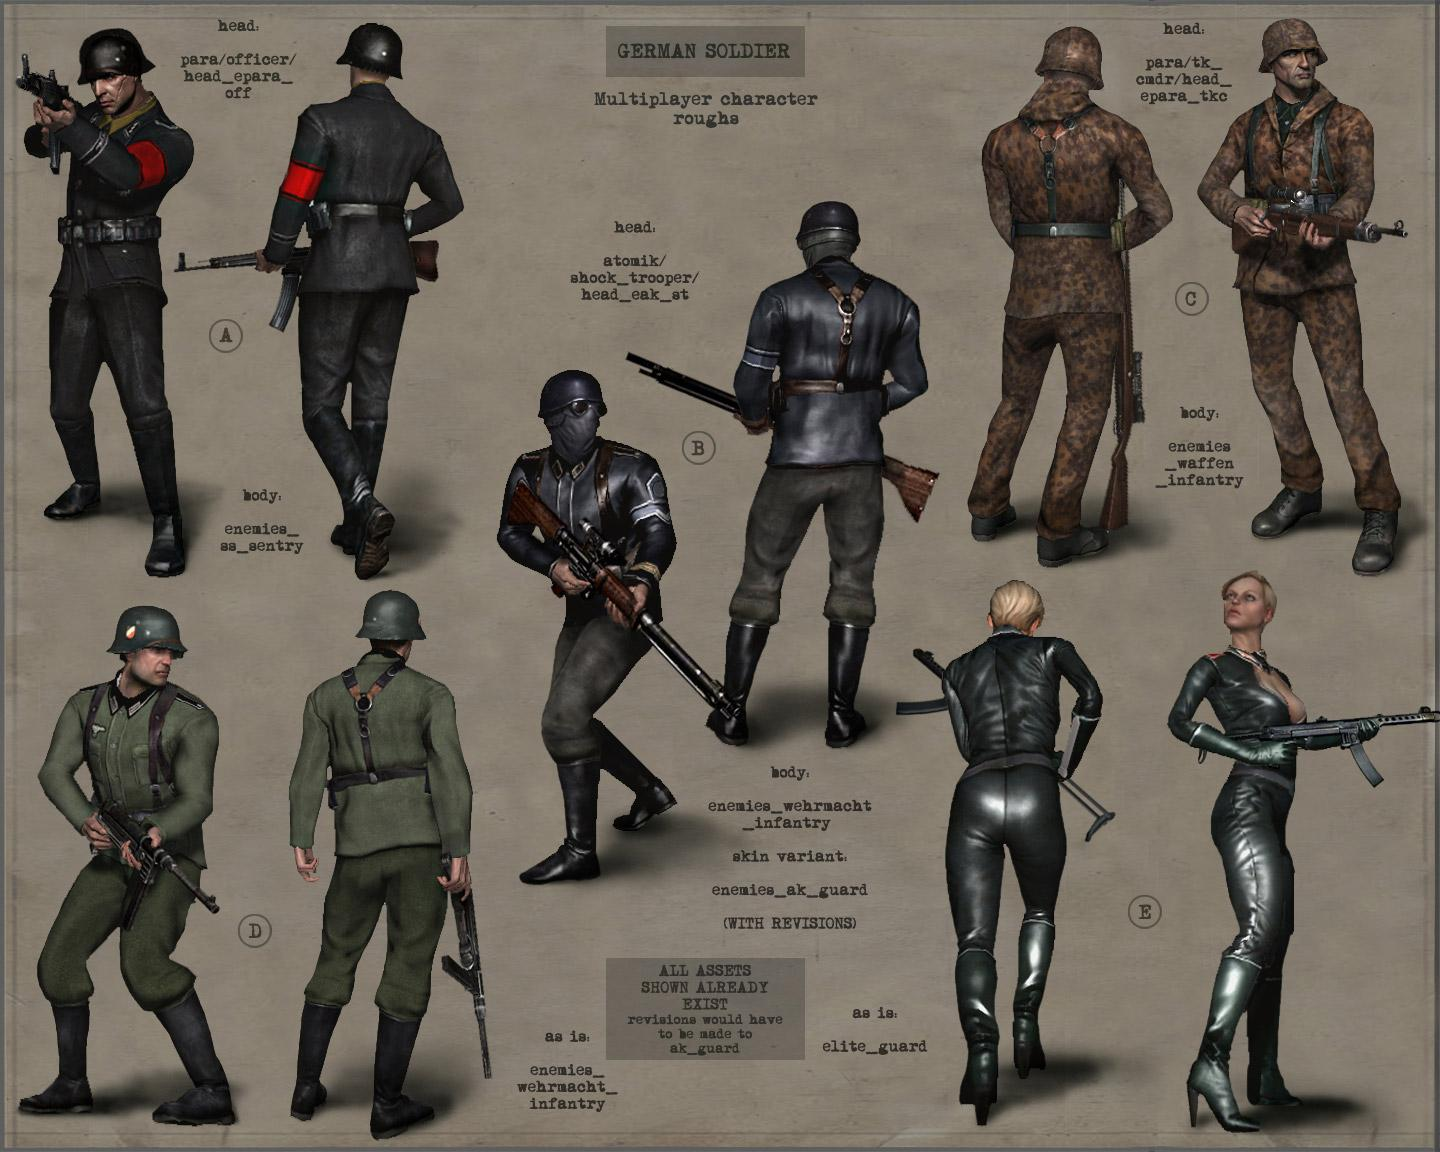 mp soldier - related image & keywords suggestions